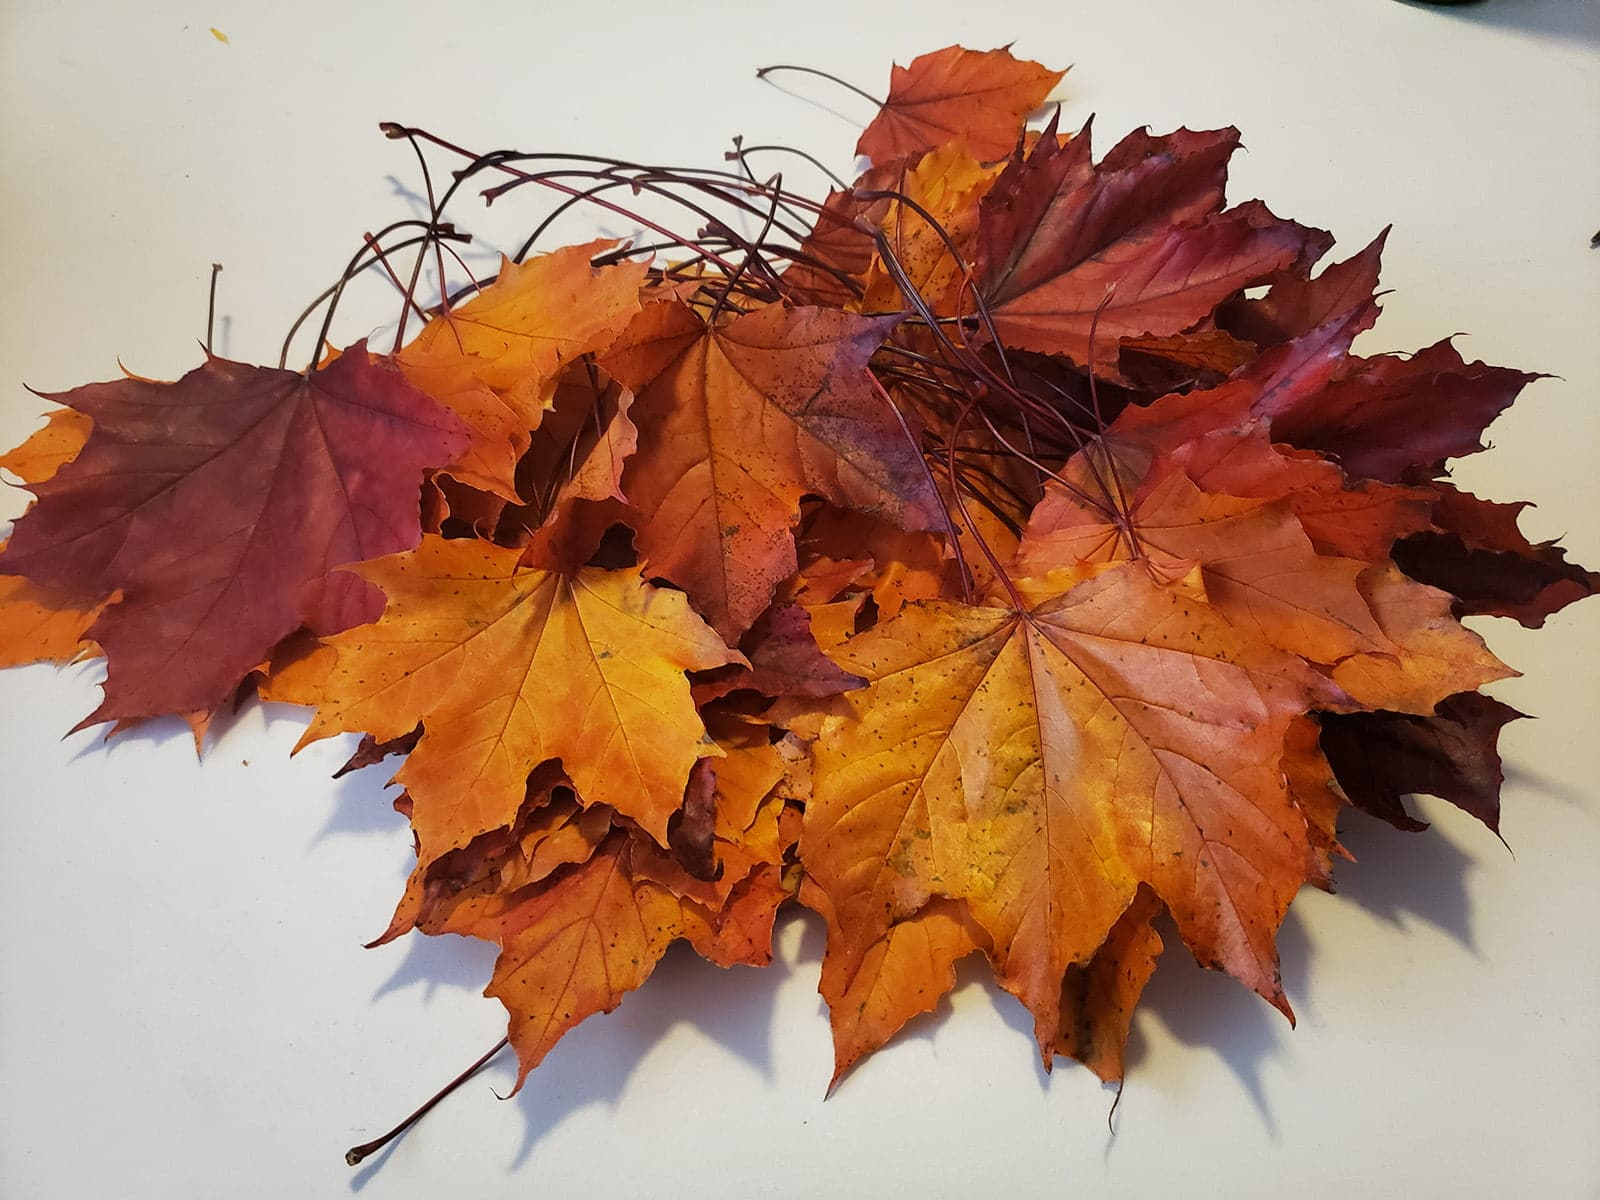 A pile of colourful maple leaves